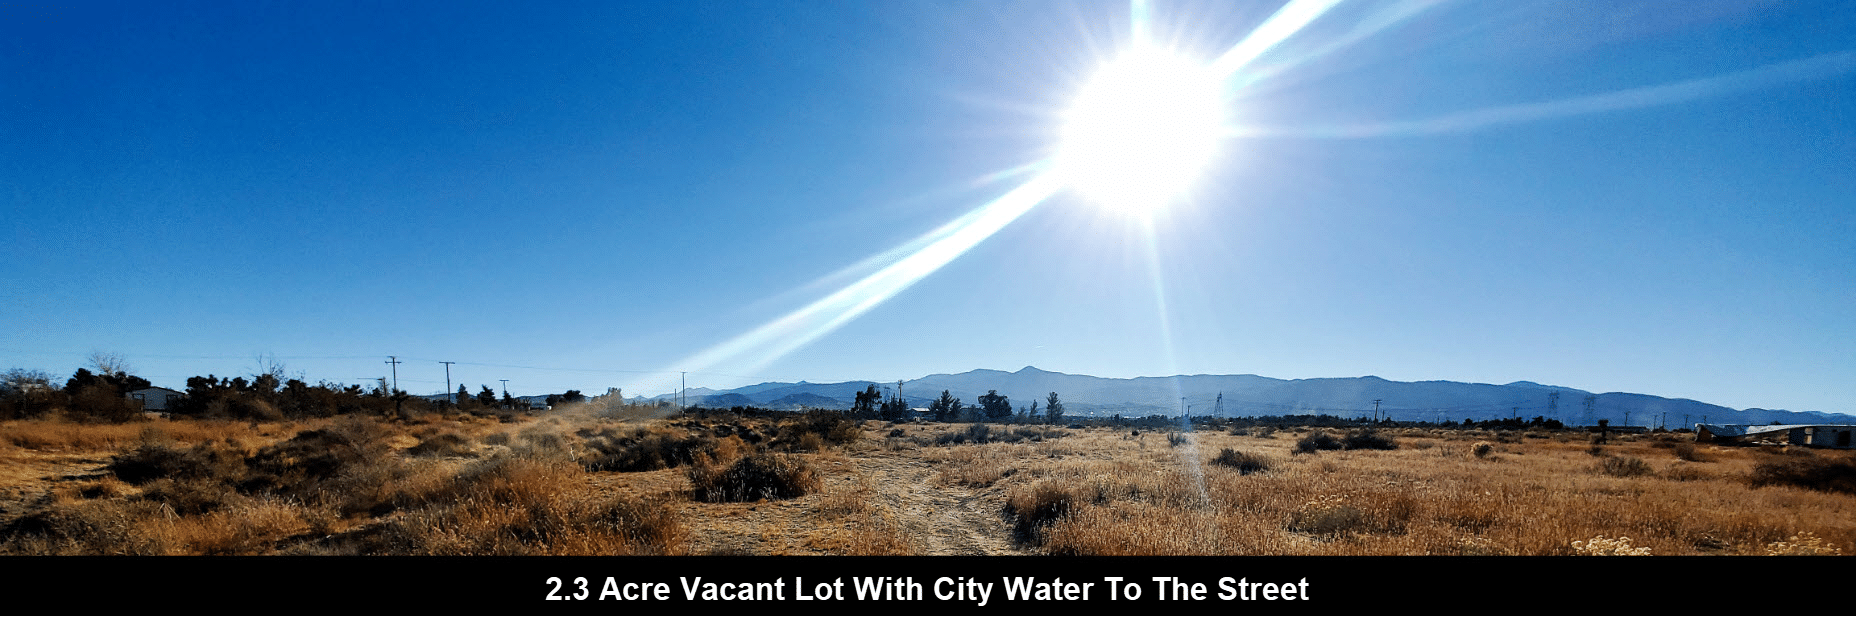 Pinon Hills 2.3 Acres Vacant Land Home Site With City Water To The Street